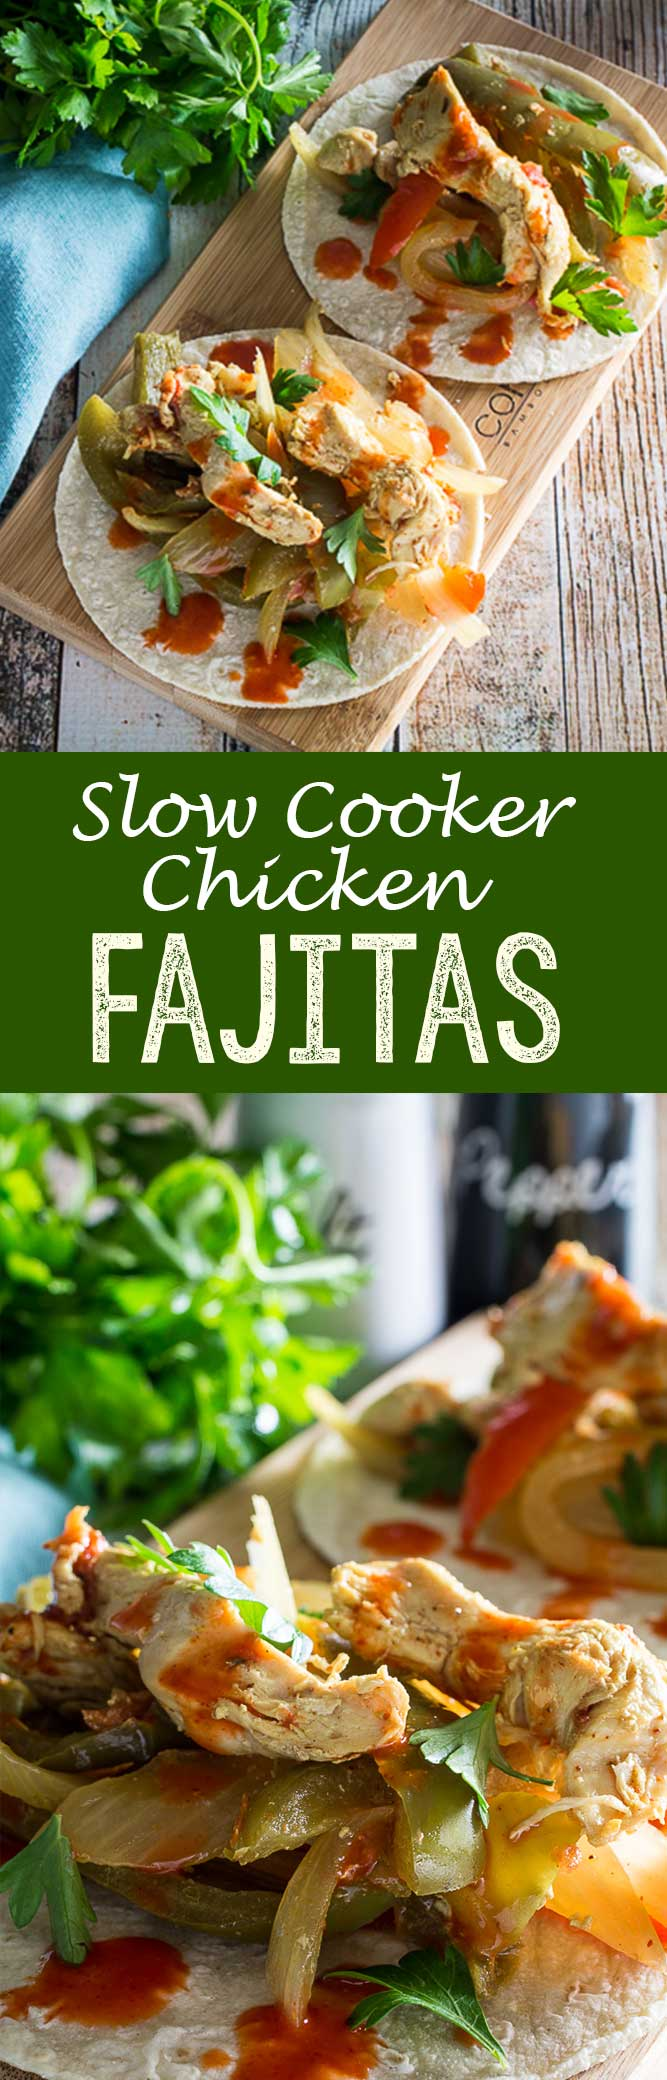 Slow Cooker Chicken Fajitas are flavorful, easy, and delicious!